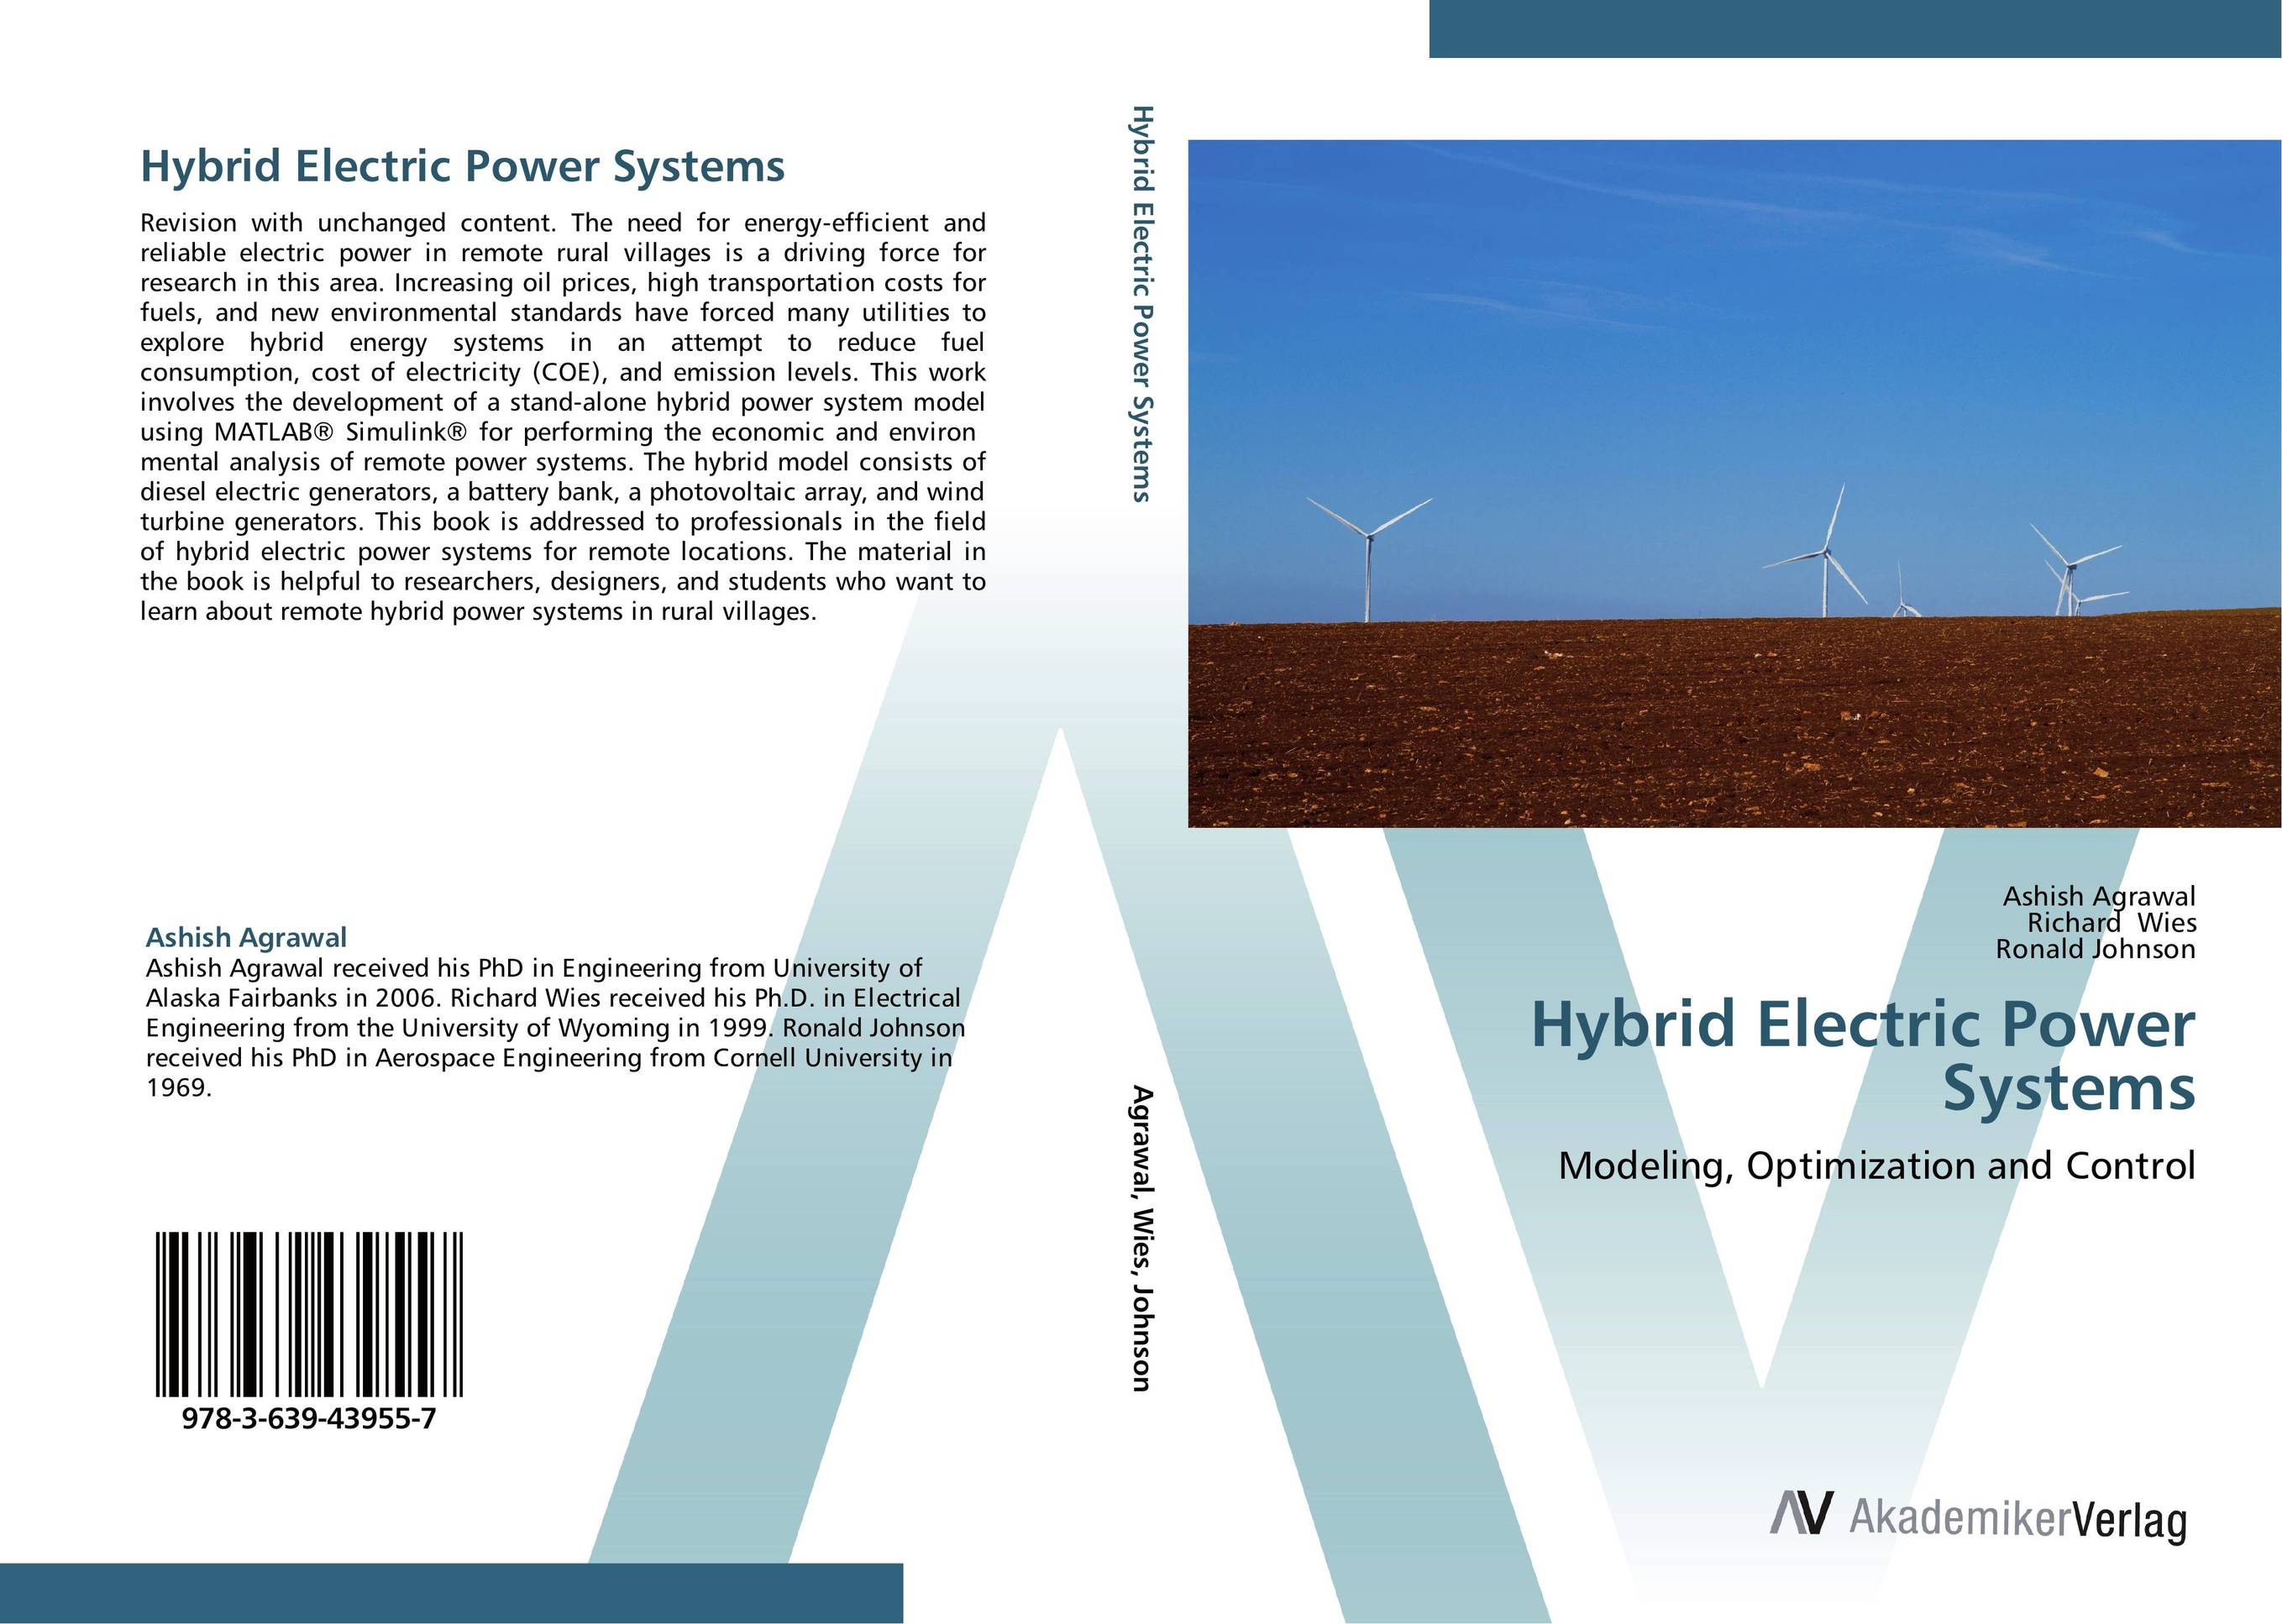 Hybrid Electric Power Systems